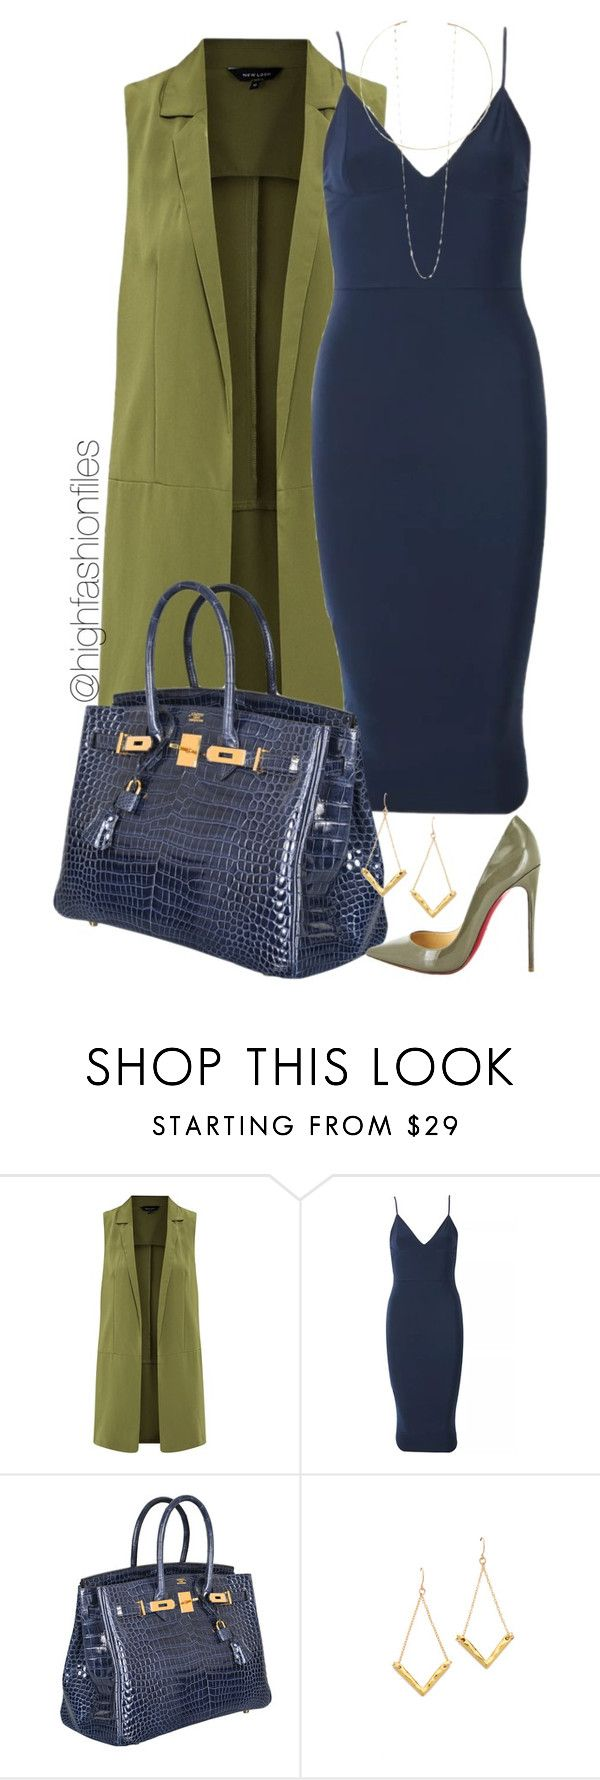 """""""Fall Out"""" by highfashionfiles ❤ liked on Polyvore featuring Hermès, Christian Louboutin, Gorjana and Jennifer Zeuner"""